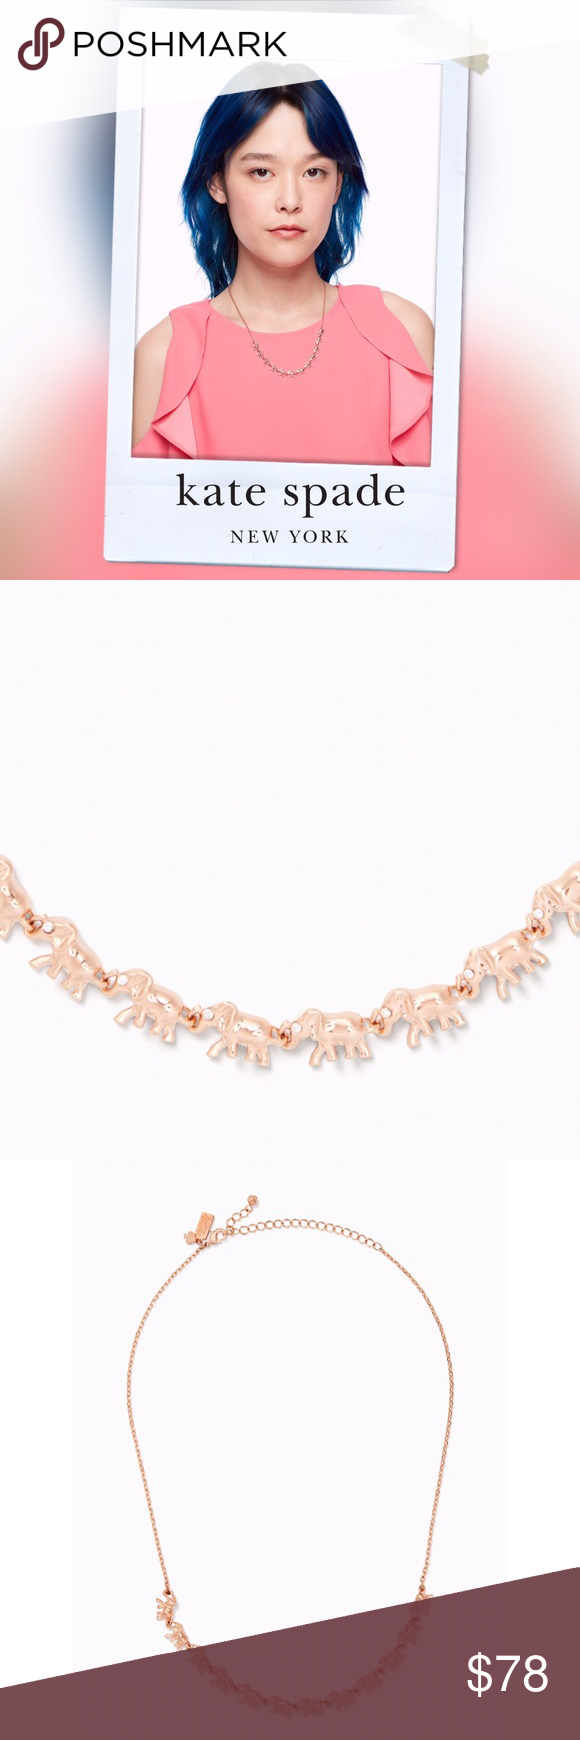 31e0d5f047767 Kate Spade Things we Love Elephant Necklace NWT. Rose gold. kate ...